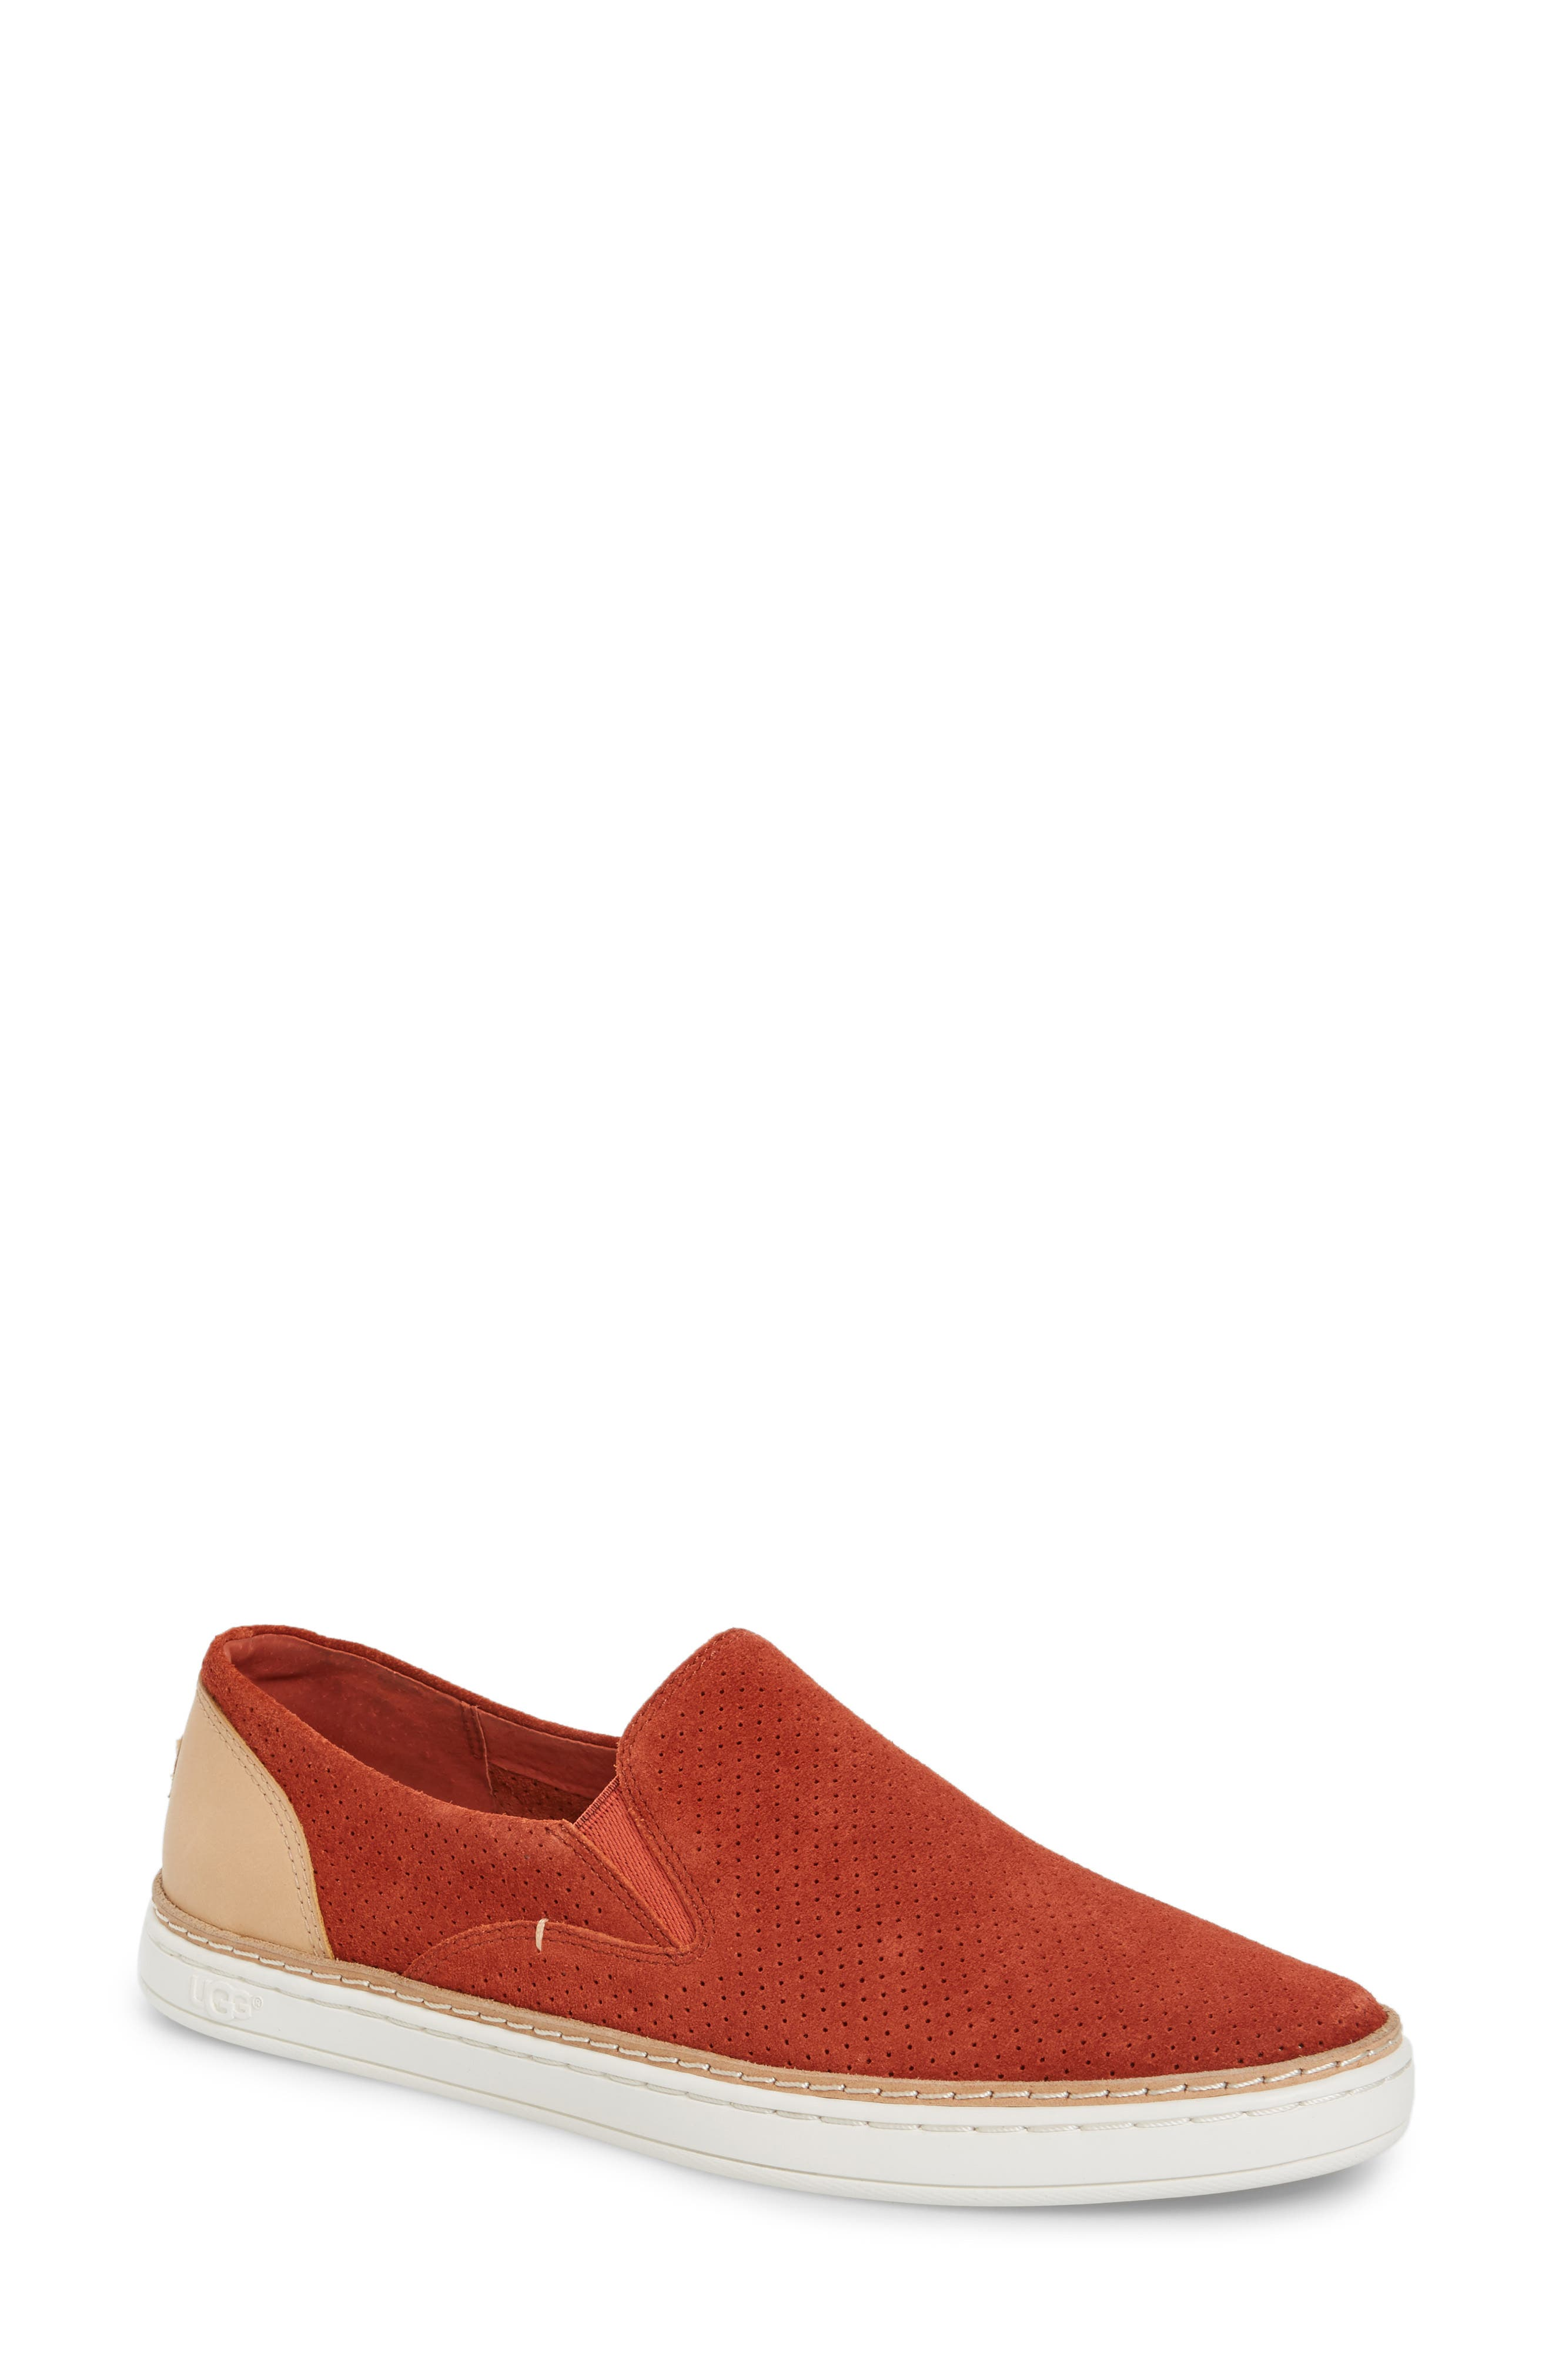 Adley Slip-On Sneaker,                             Main thumbnail 1, color,                             Paprika Suede